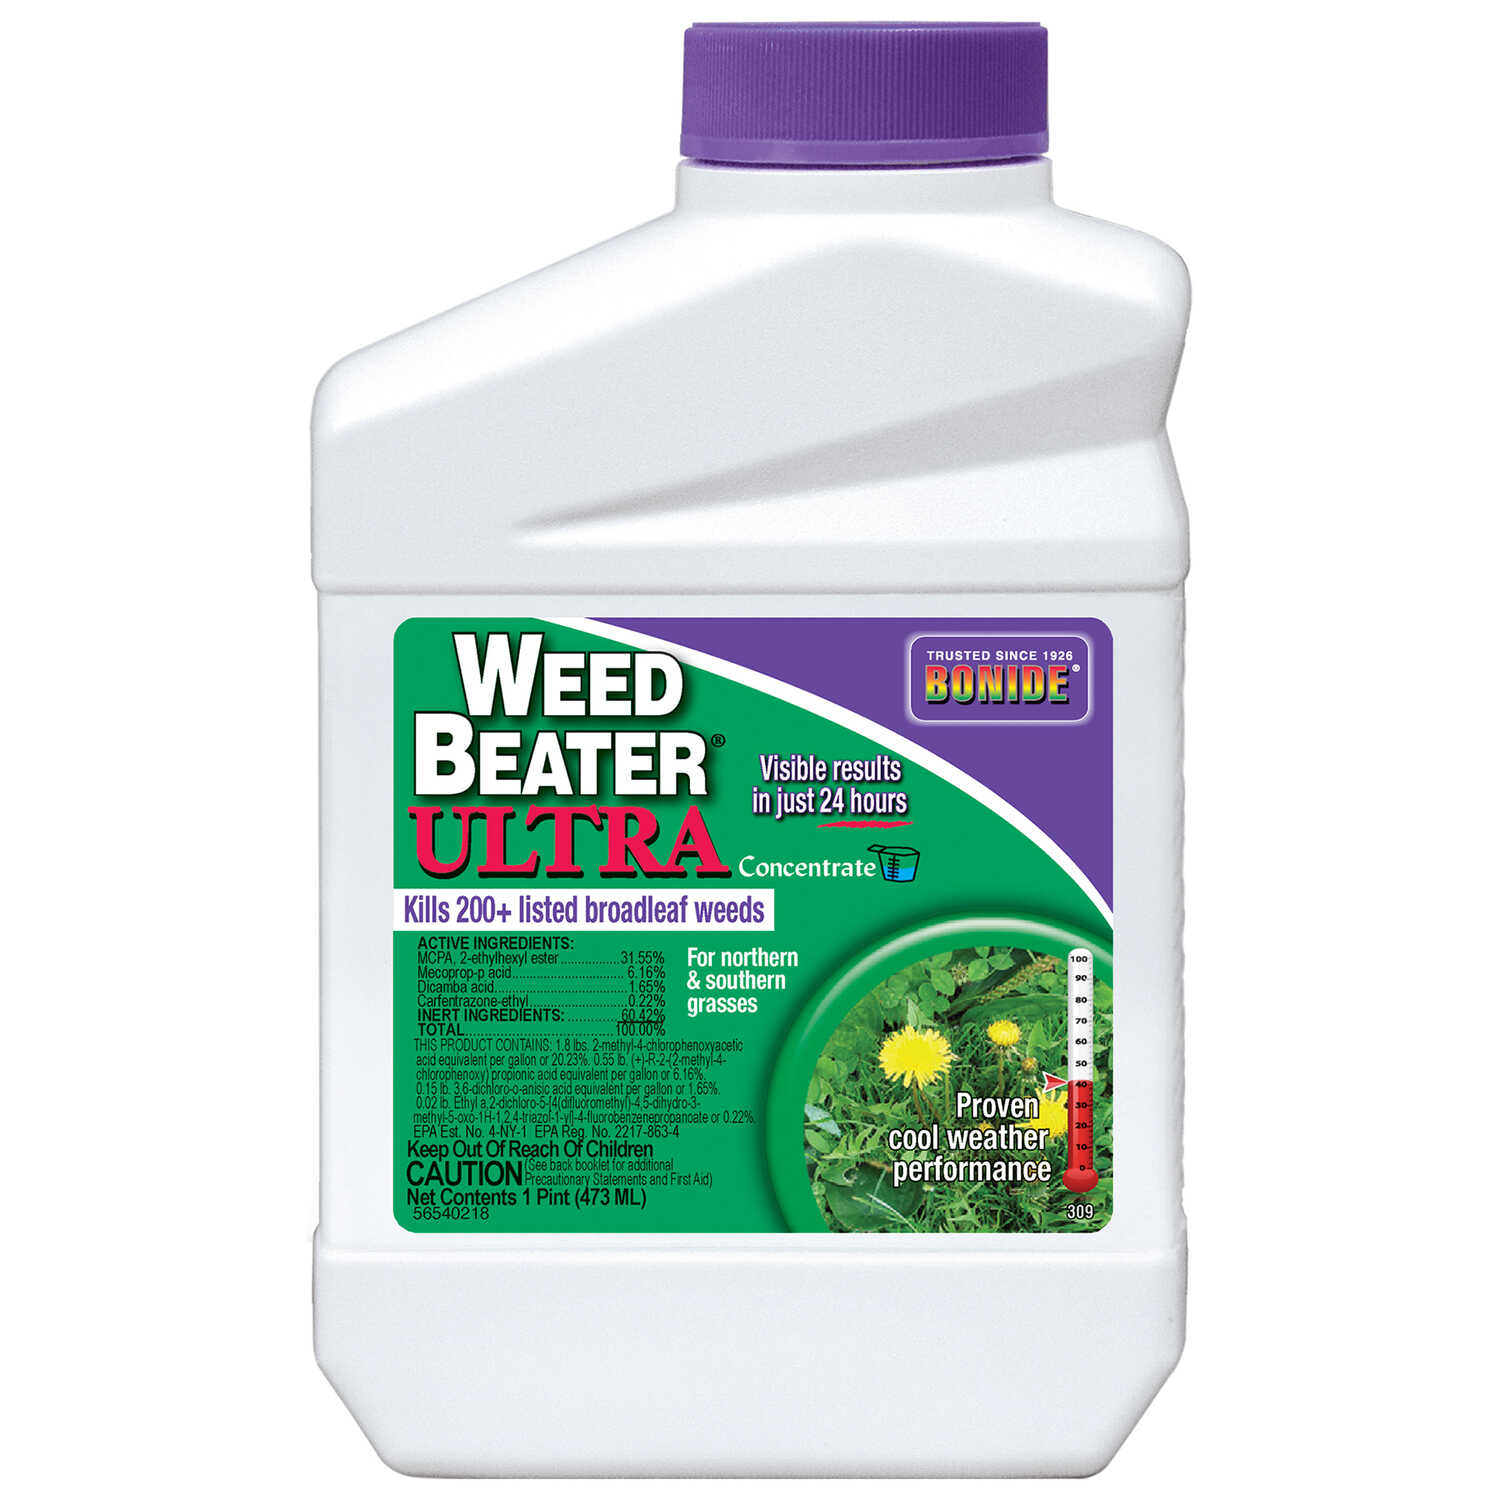 Bonide  Weed Beater Ultra  Concentrate  Weed Killer  16